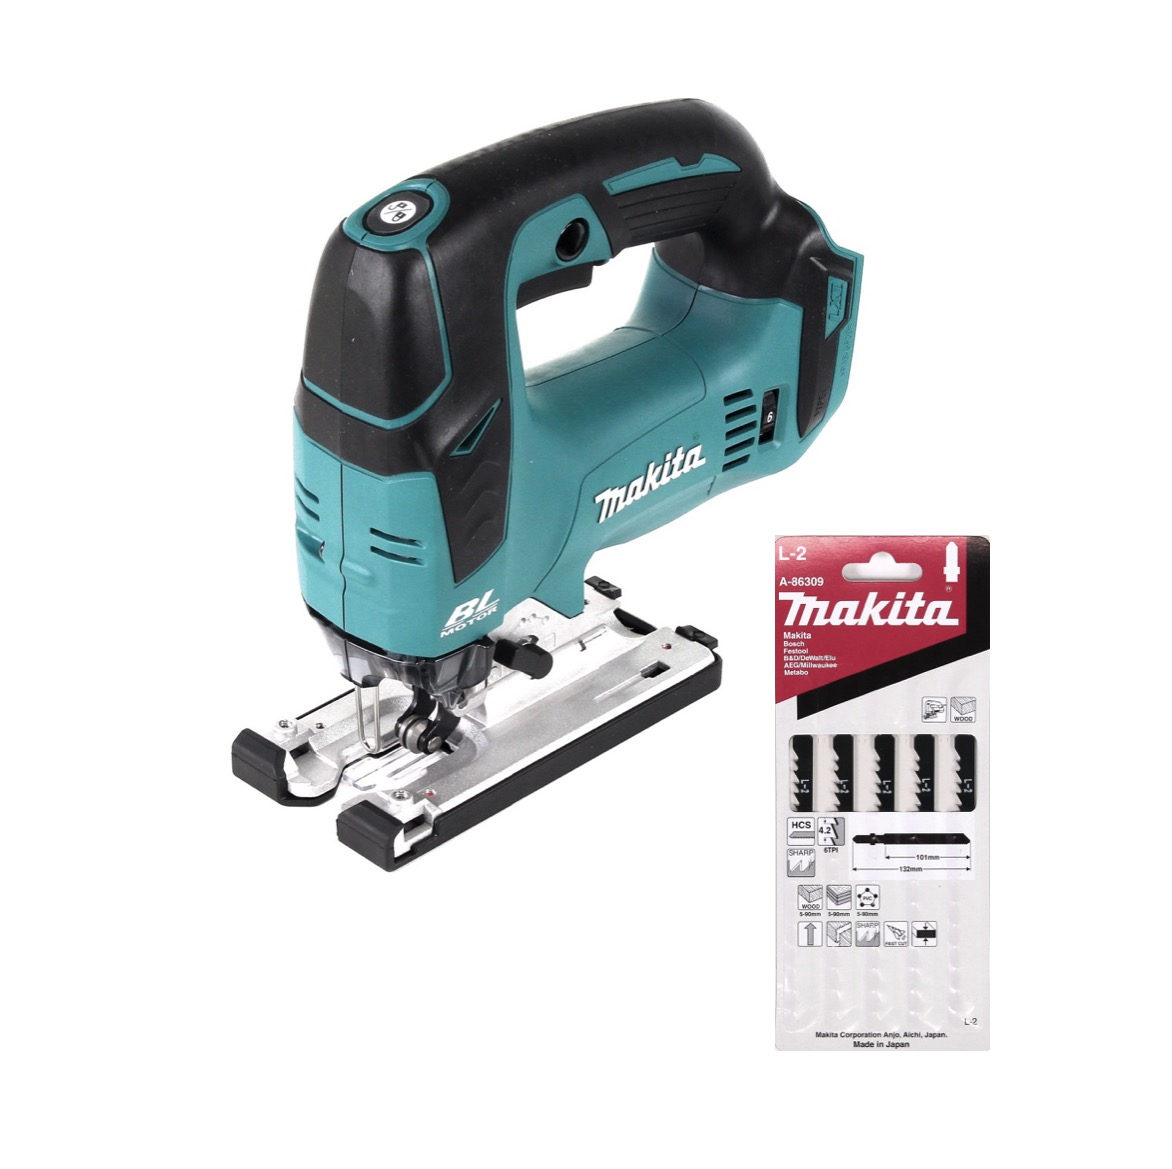 bosch 25 säbelsägeblätter s 918 bf 150 mm basic for metal ( 5 x